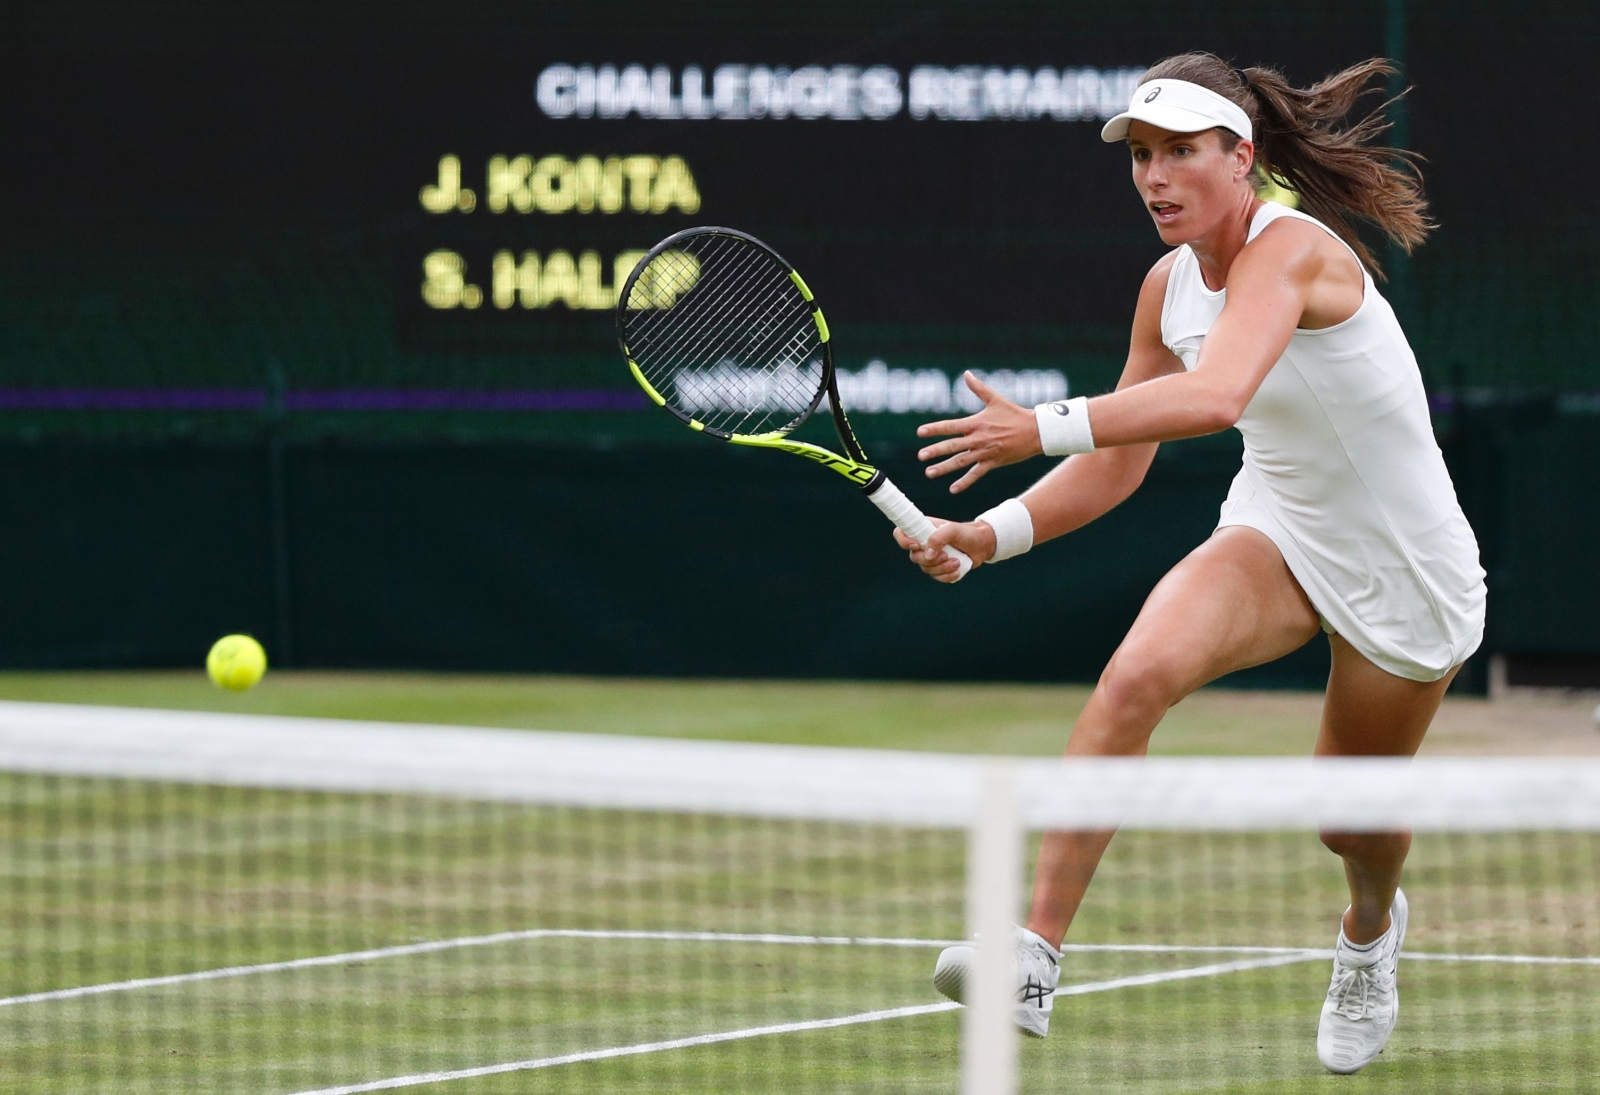 Wimbledon dream continues for nerveless Johanna Konta